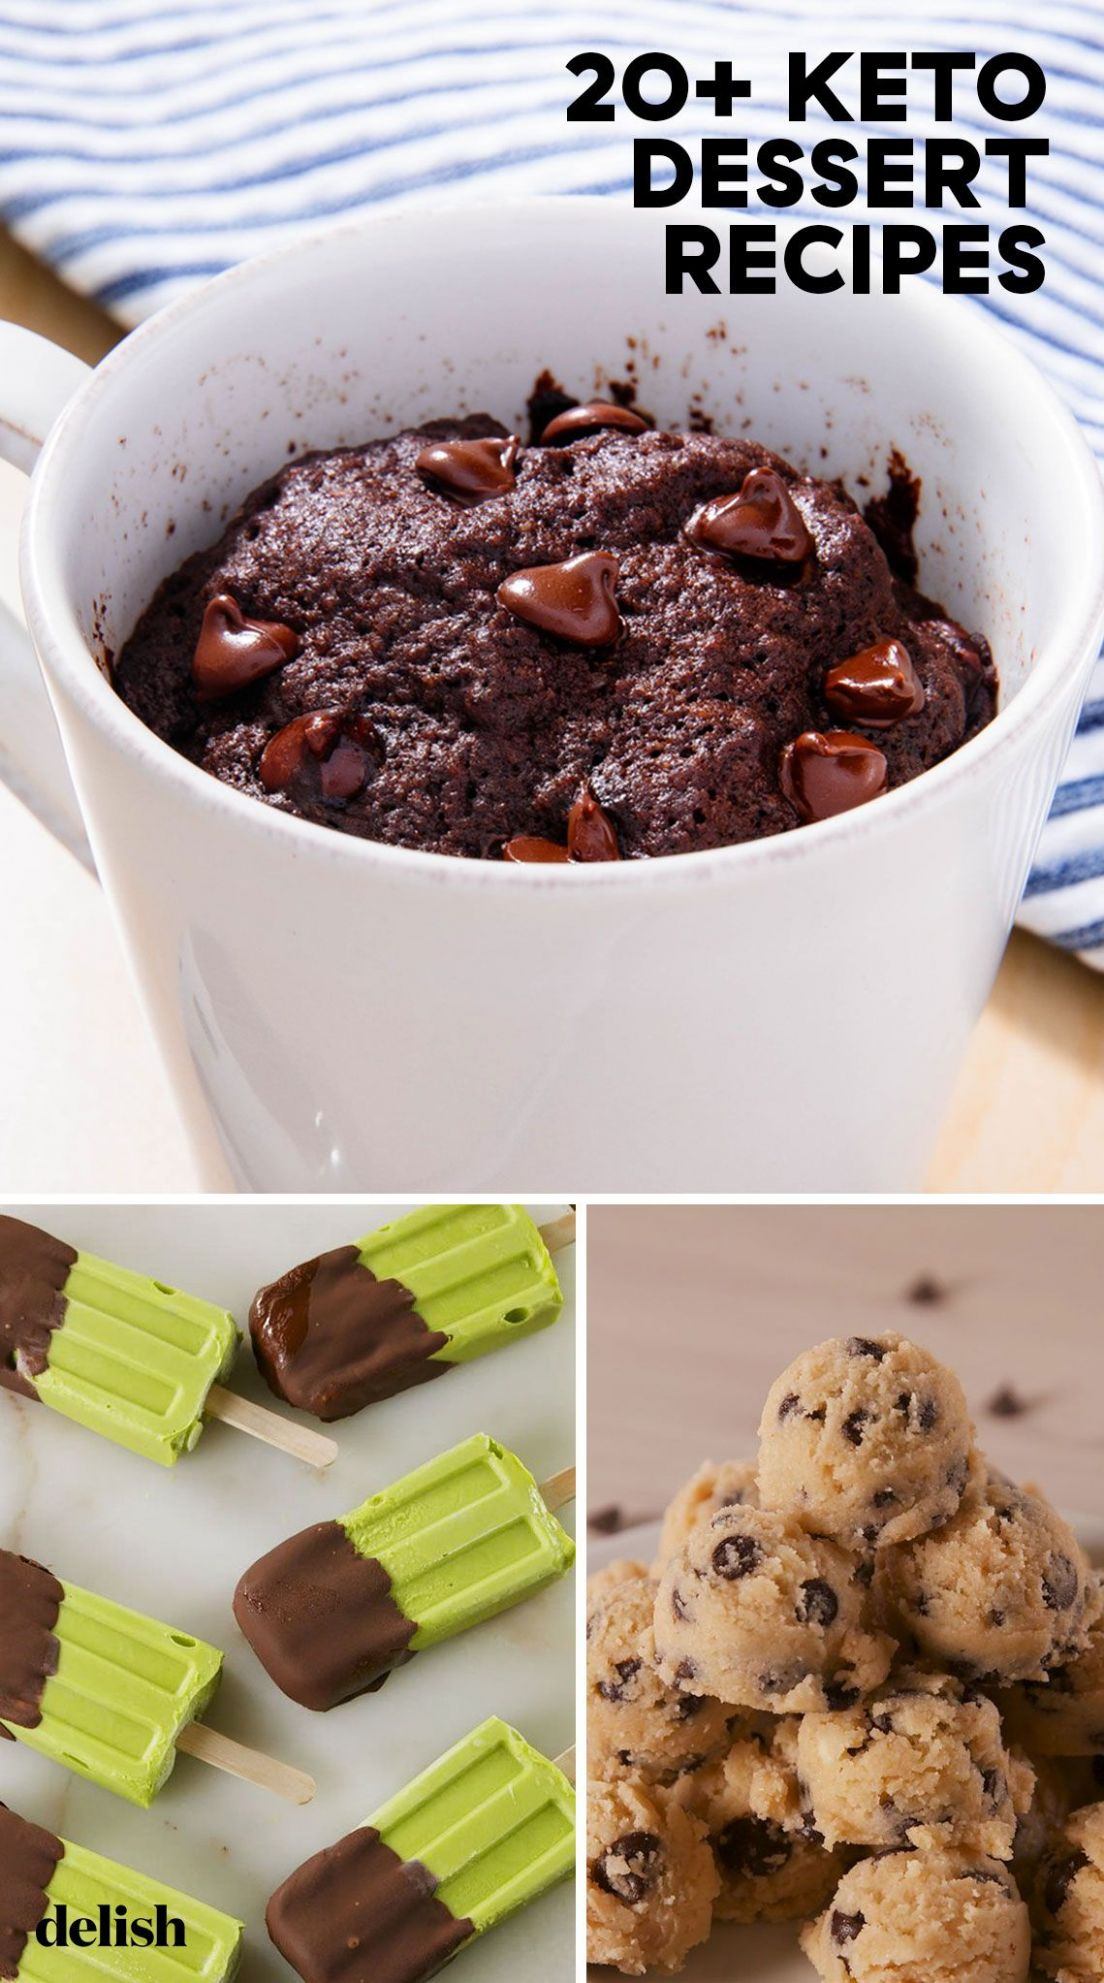 9+ Easy Keto Dessert Recipes - Best Low Carb Desserts for Keto Diets - Dessert Recipes Keto Diet